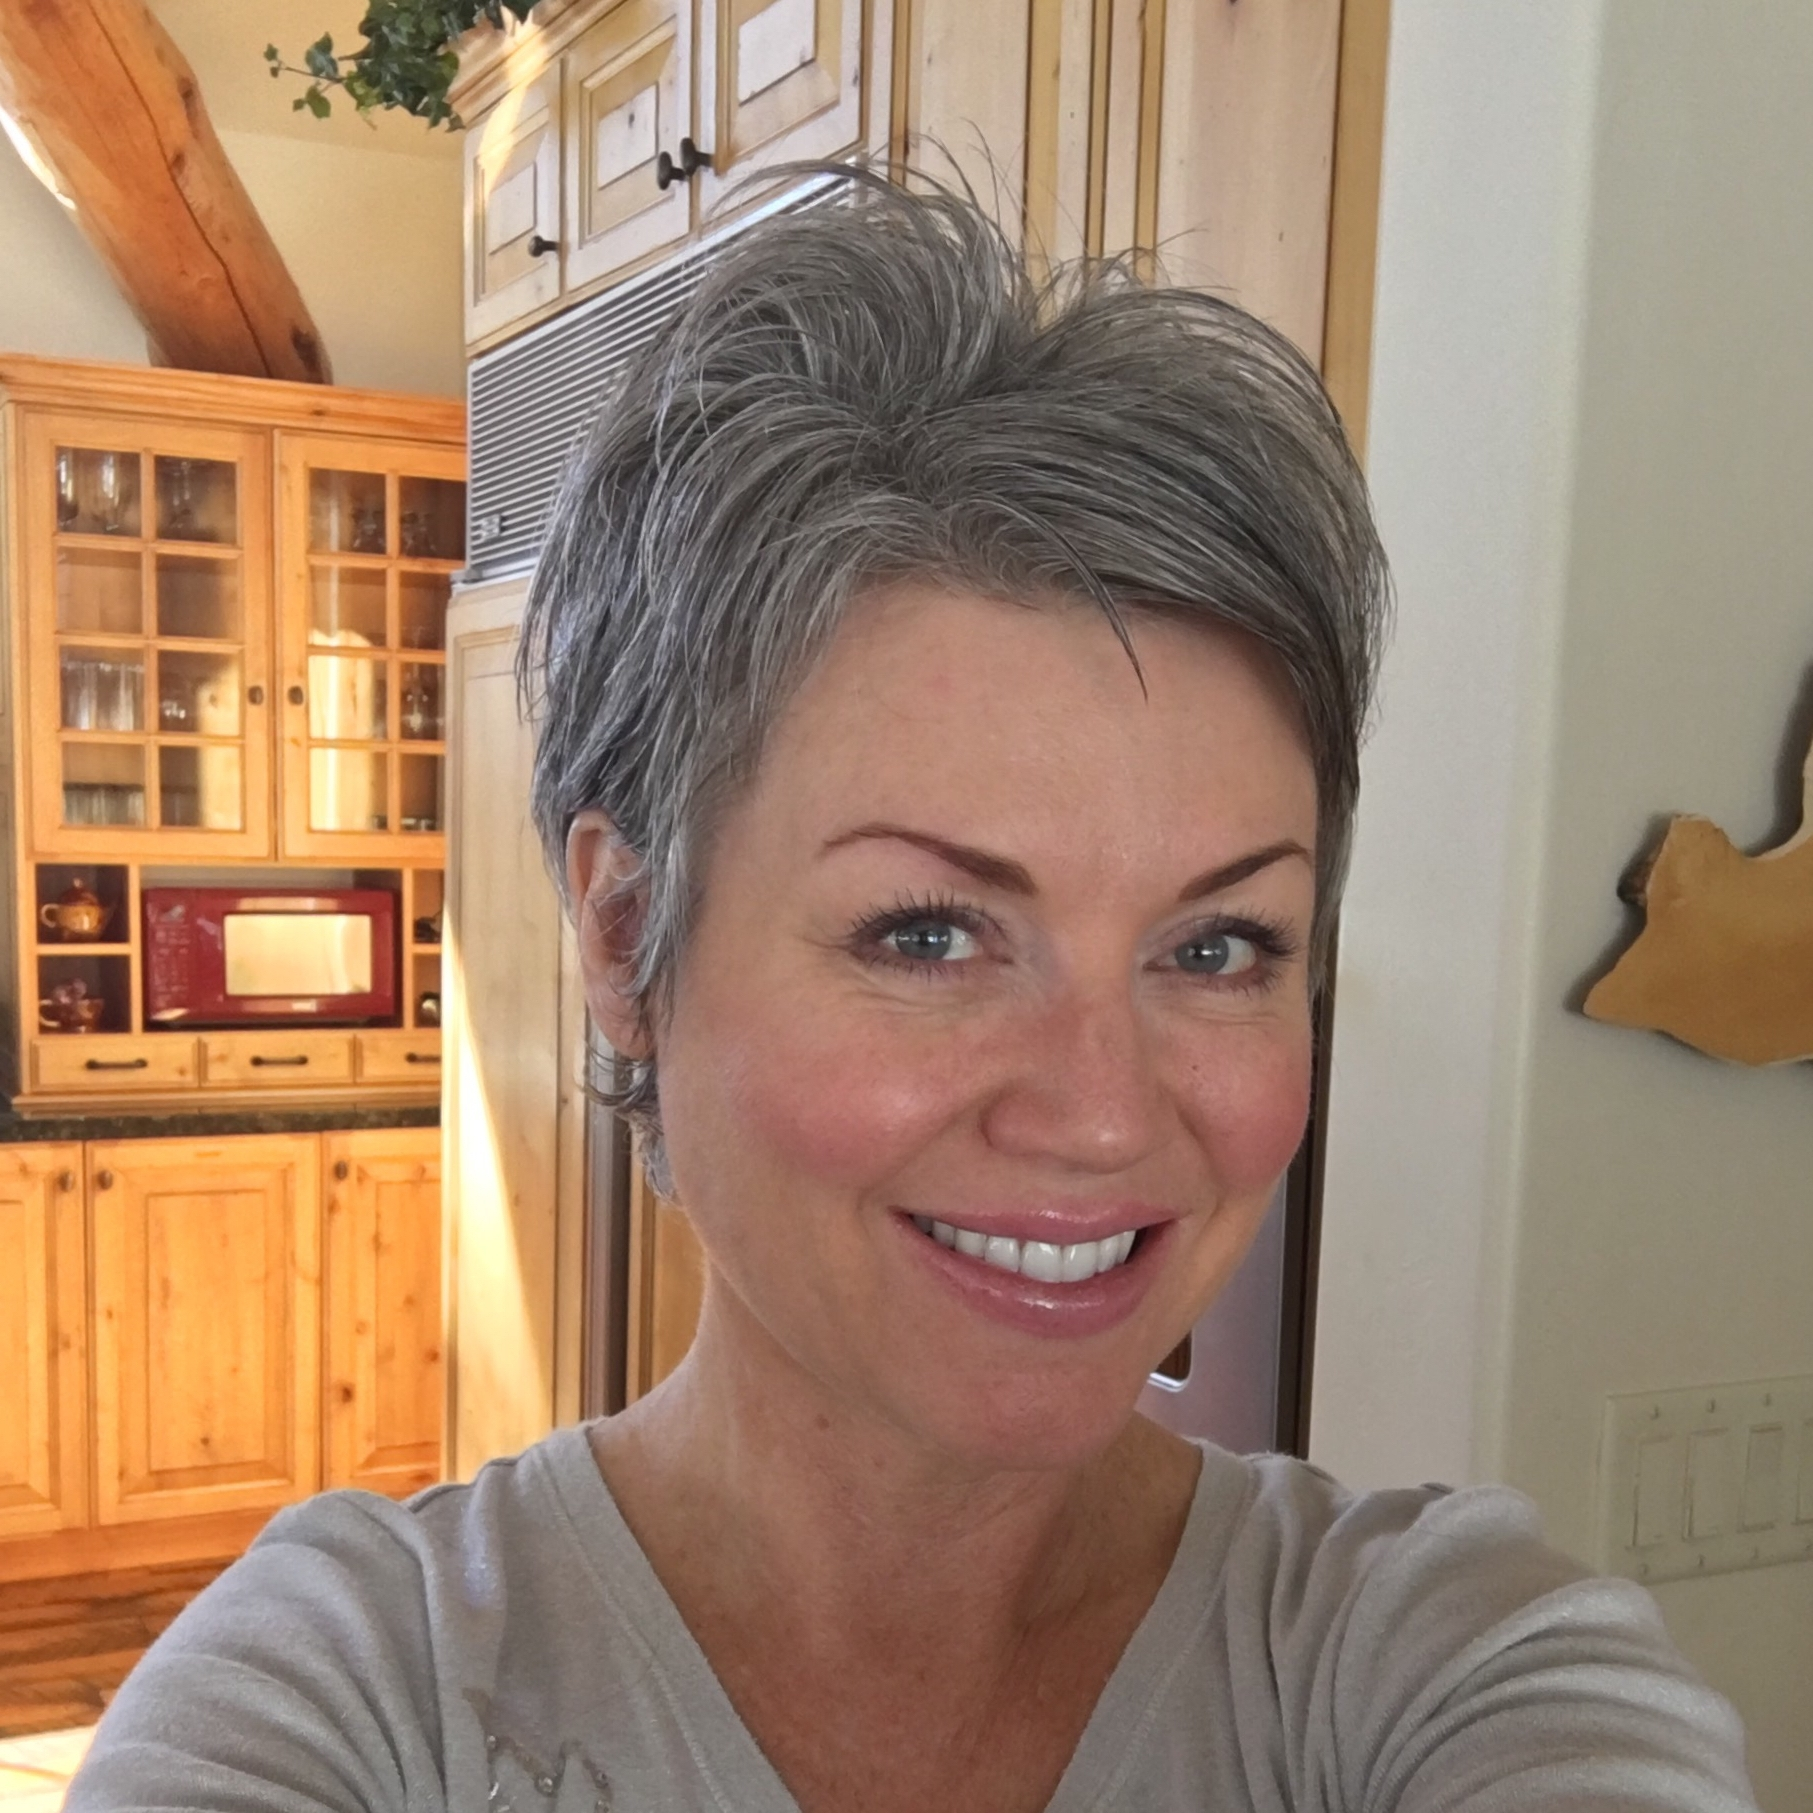 Shortgreyhair #pixie #lettingitgrow (View 4 of 15)